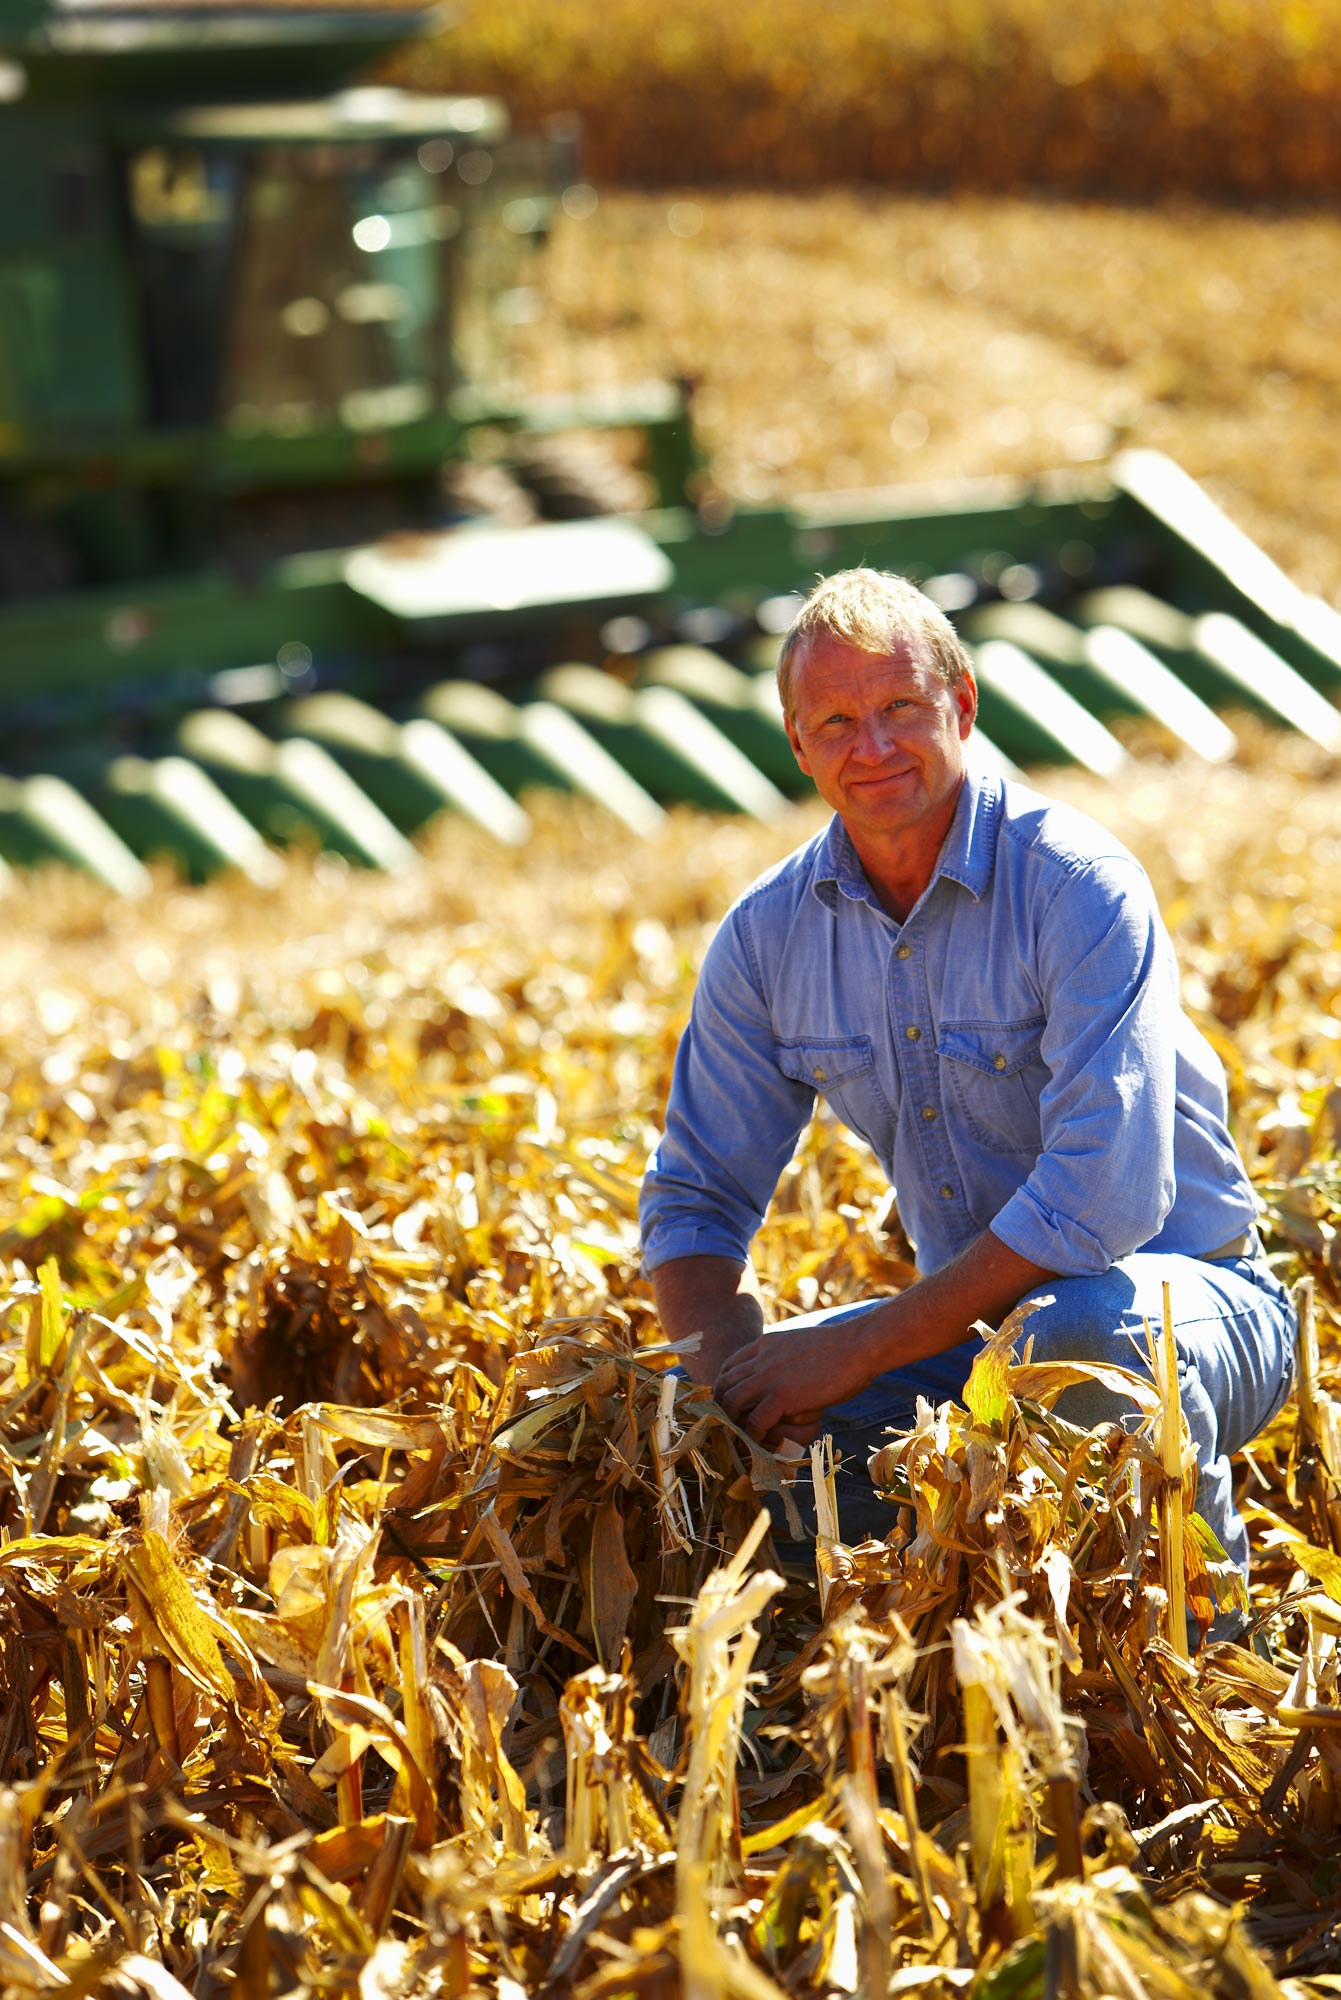 John Nienhuis | Midwest Agriculture & Farming Photographer | Image Library Photography